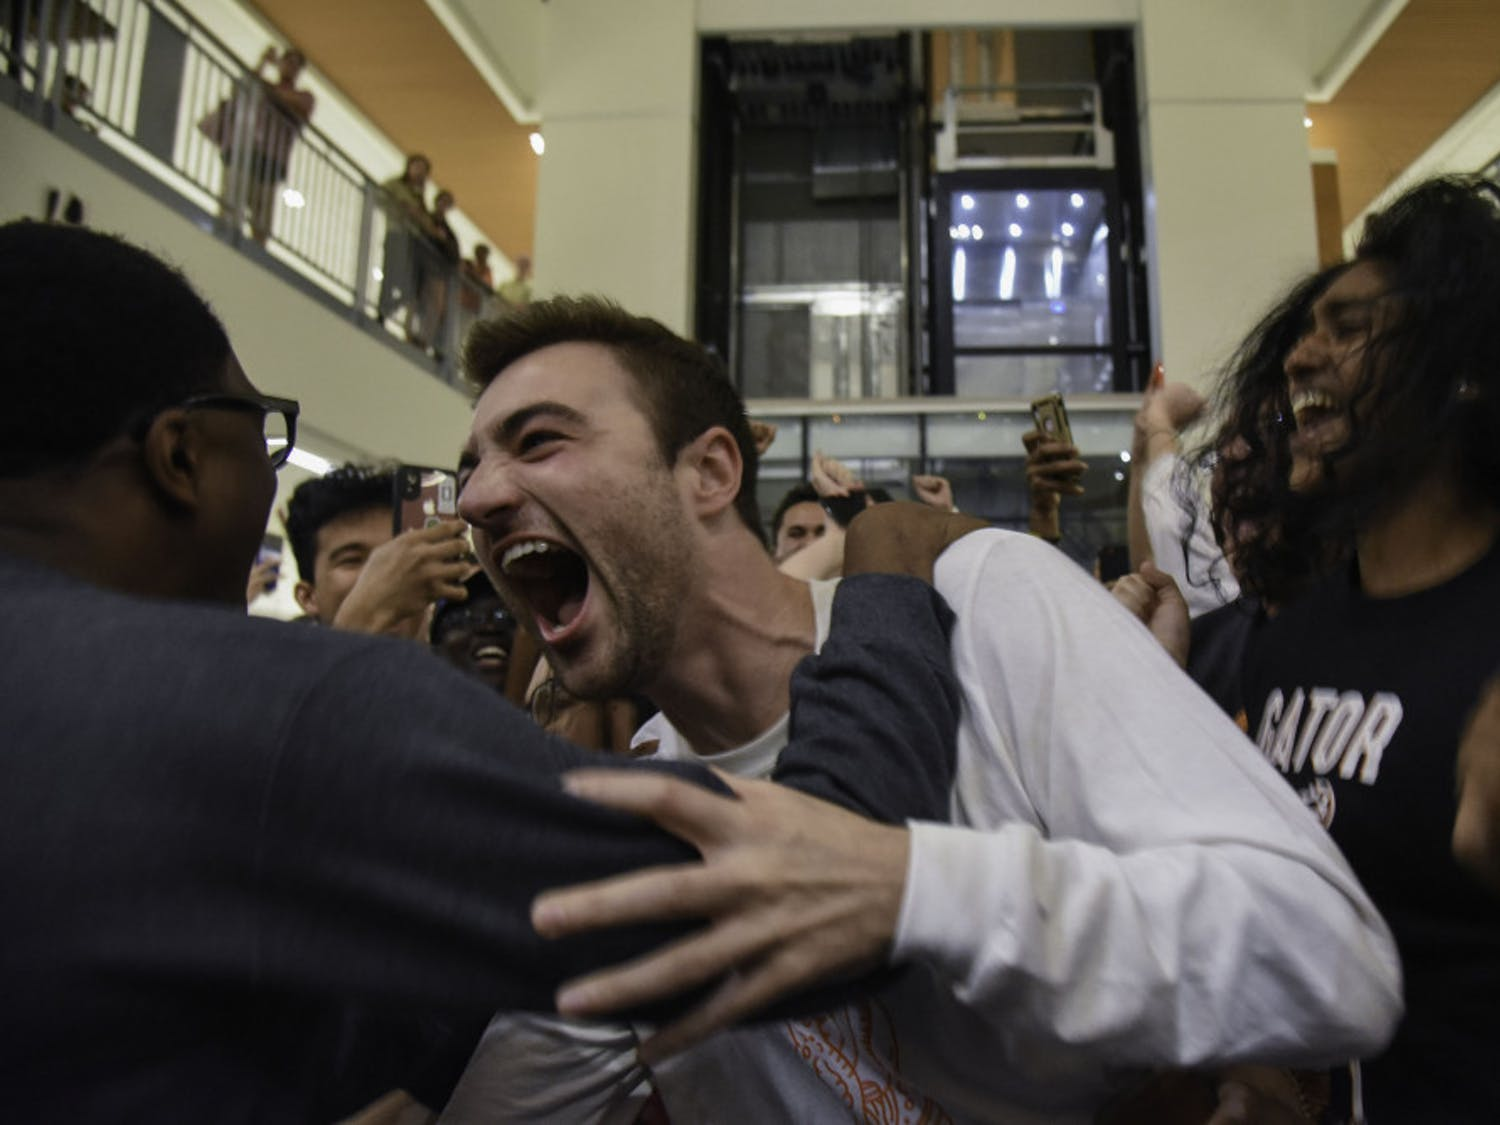 Trevor Pope, a 22-year-old UF law student and the UF Student Government president-elect, grabs ahold of Lauredan Official, a 21-year-old UF advertising junior and the vice president-elect, after finding out election results that were announced at the Reitz Union Wednesday night.